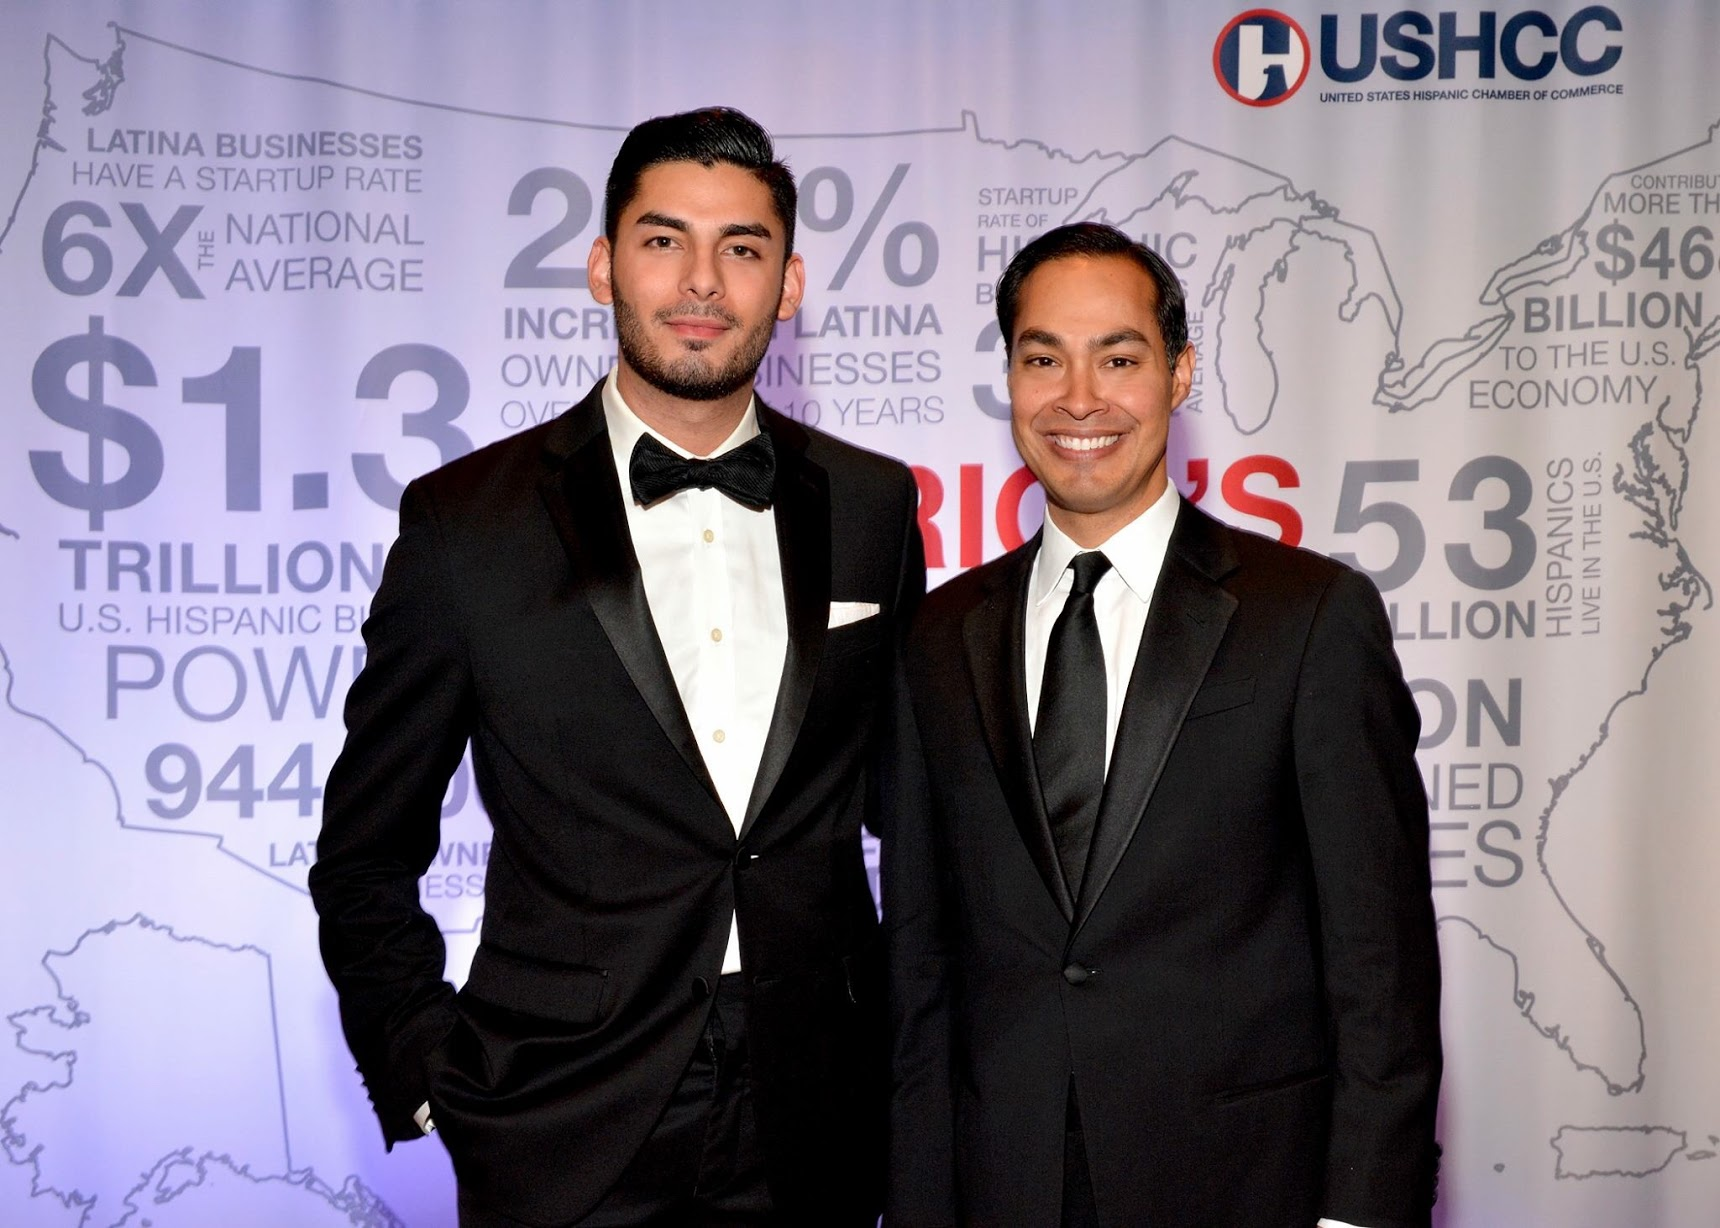 Ammar and Julian Castro at the US Hispanic Chamber of Commerce